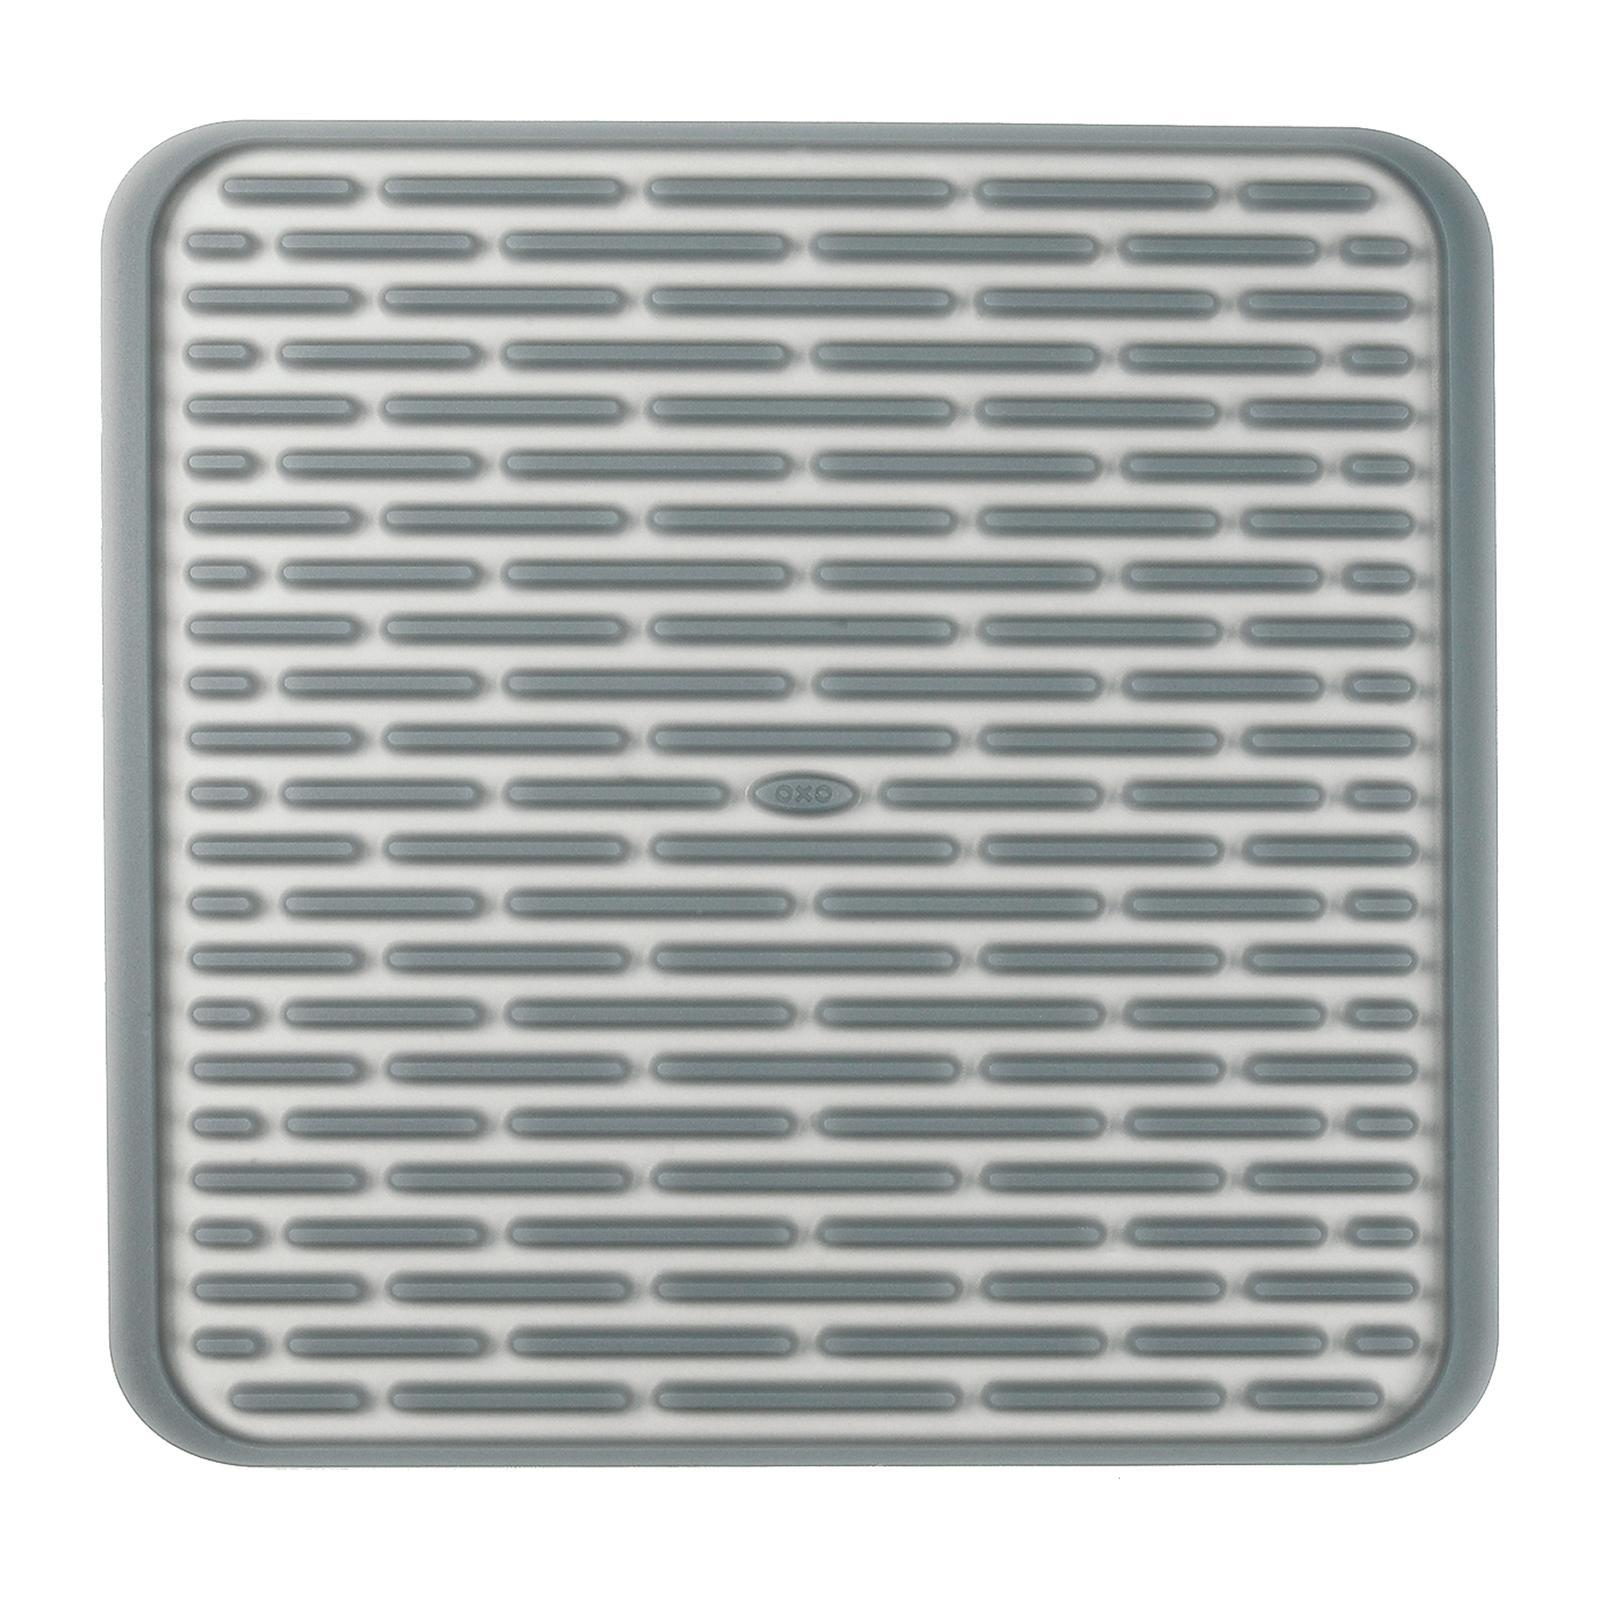 Oxo Square Silicon Drying Mats